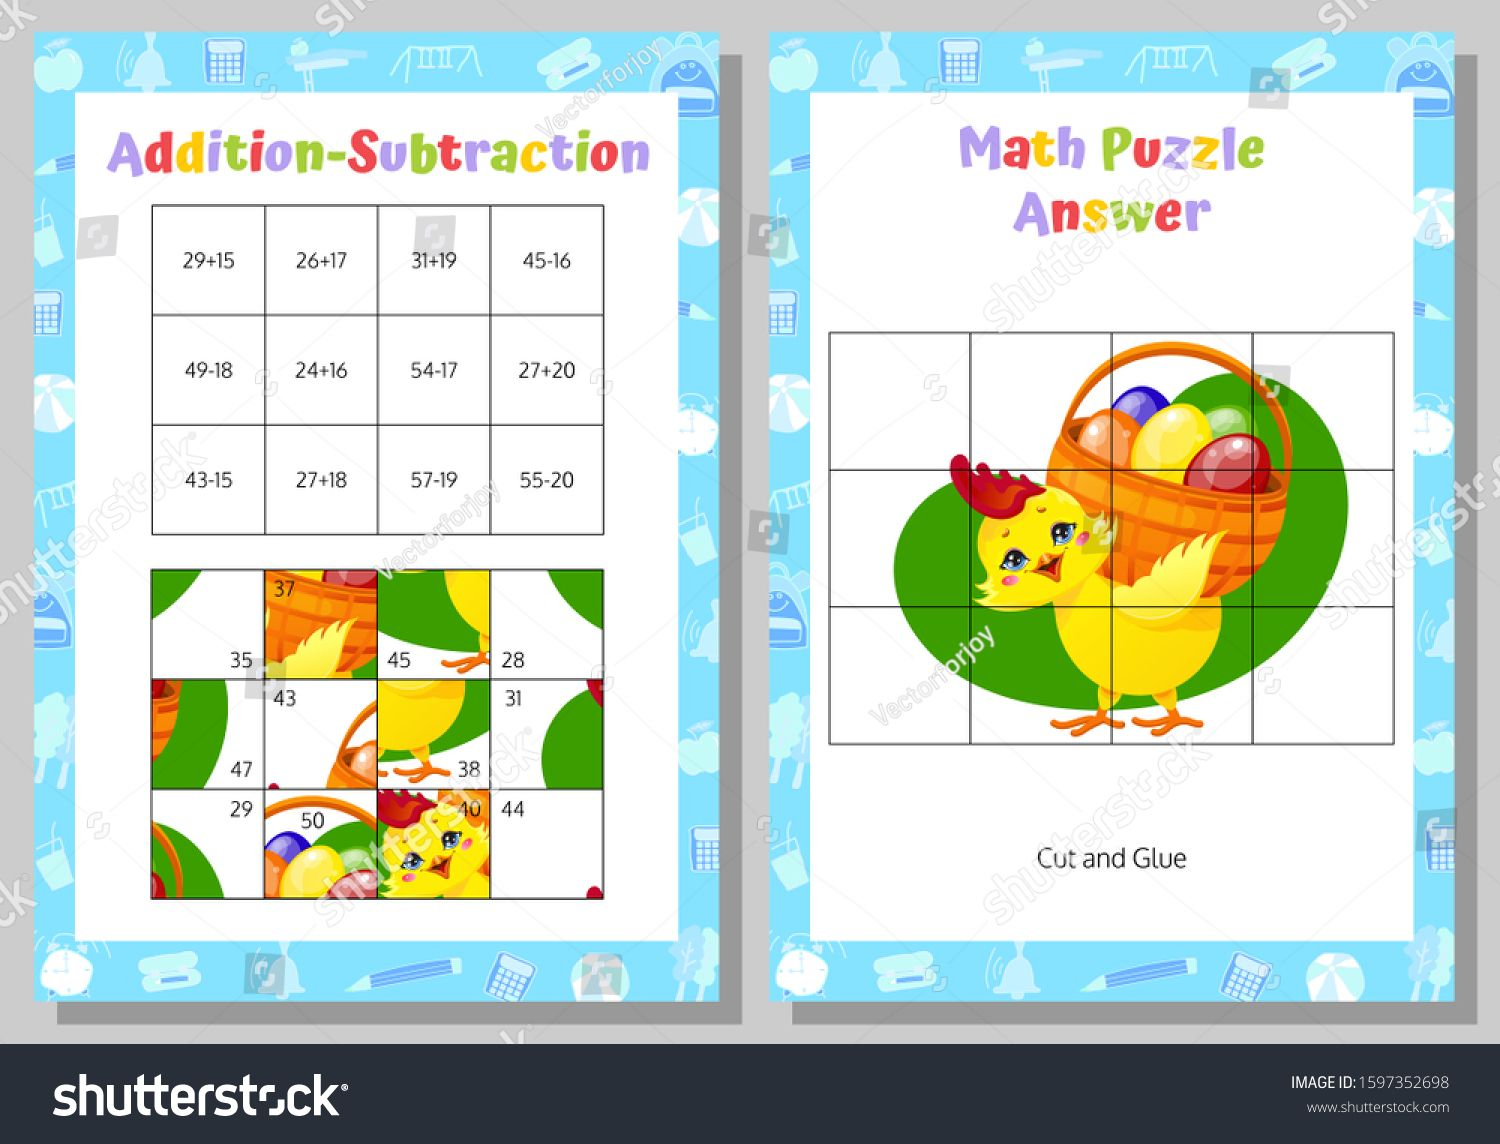 Addition Subtraction Math Puzzle Worksheet Educational